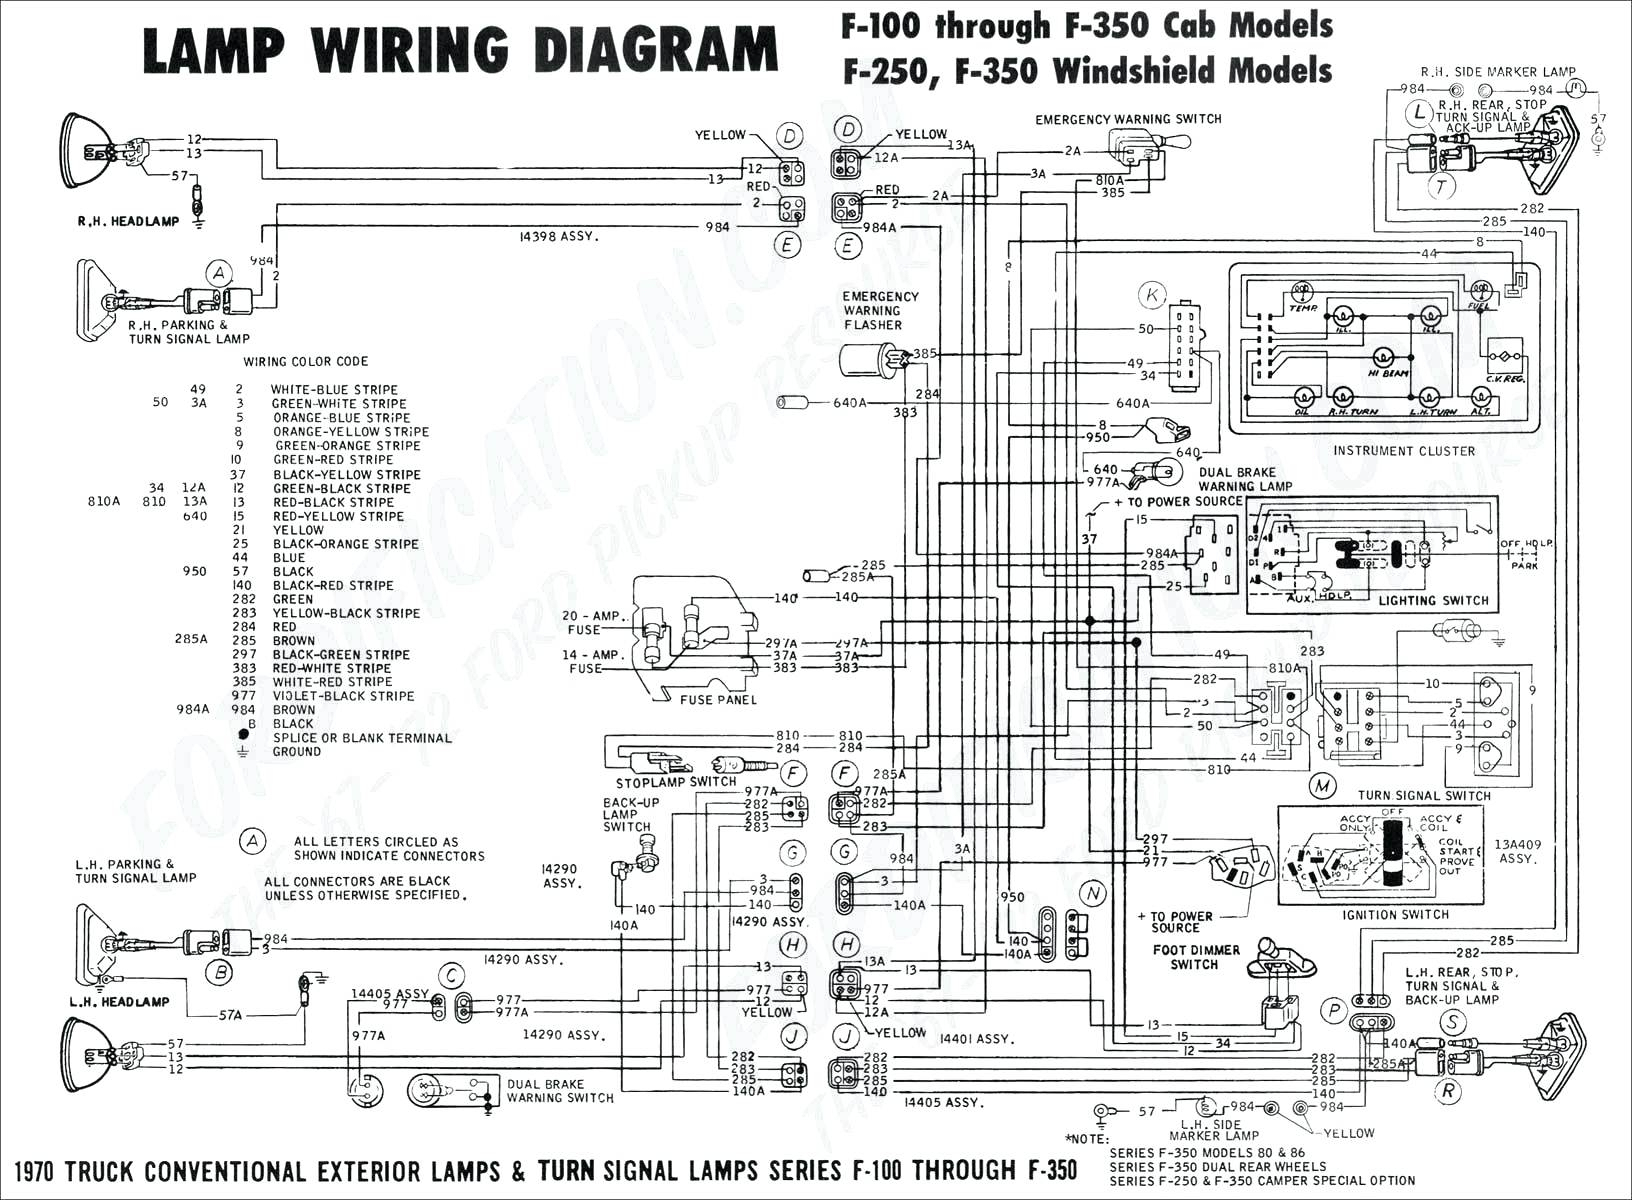 Get 2003 Dodge Ram 2500 Trailer Wiring Diagram Sample - 2003 Dodge Ram 2500 Trailer Wiring Diagram